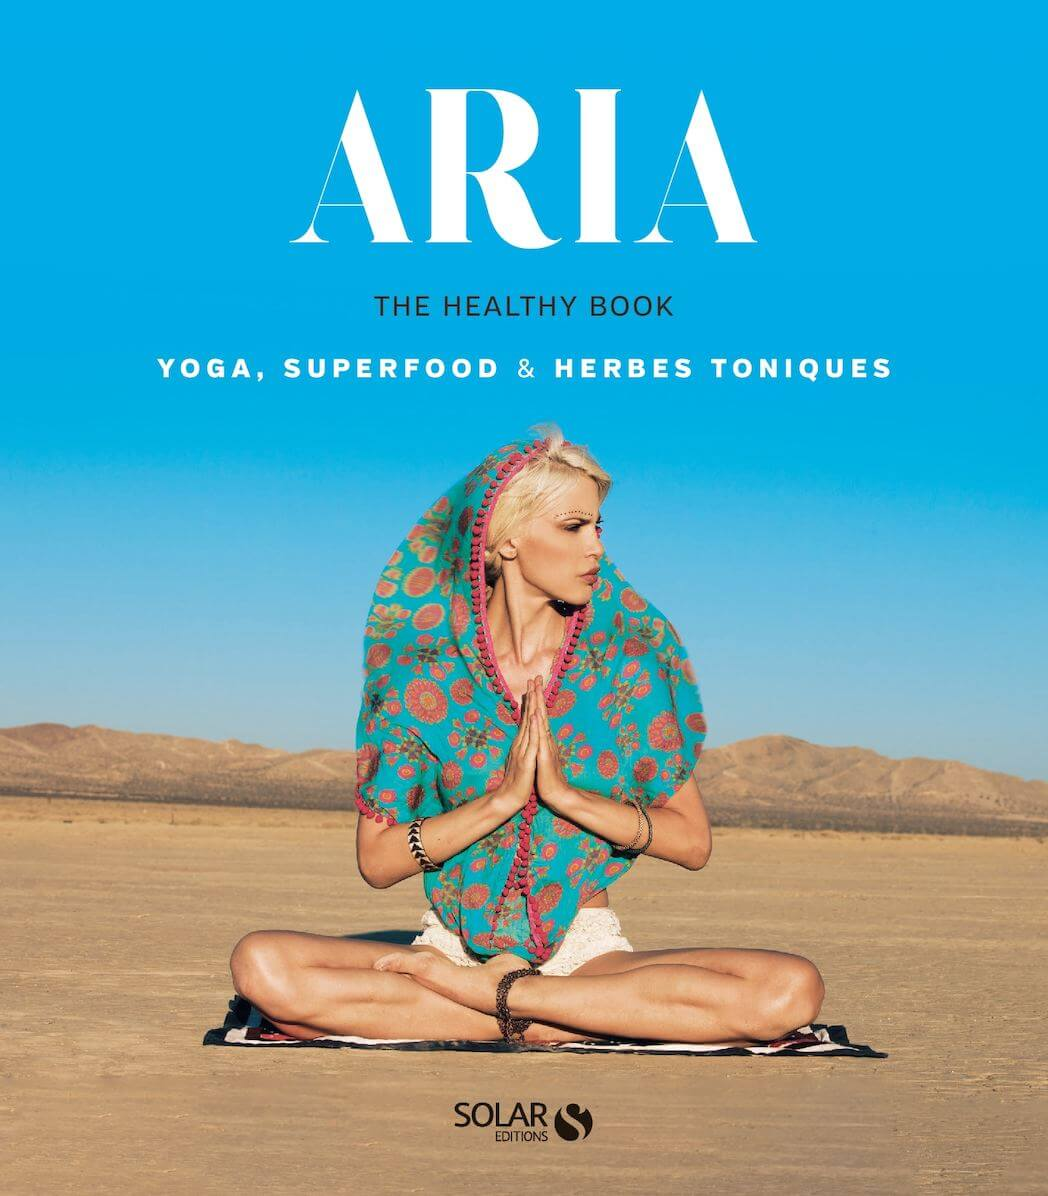 Livre Aria Crescendo Healthy Book yoga girl